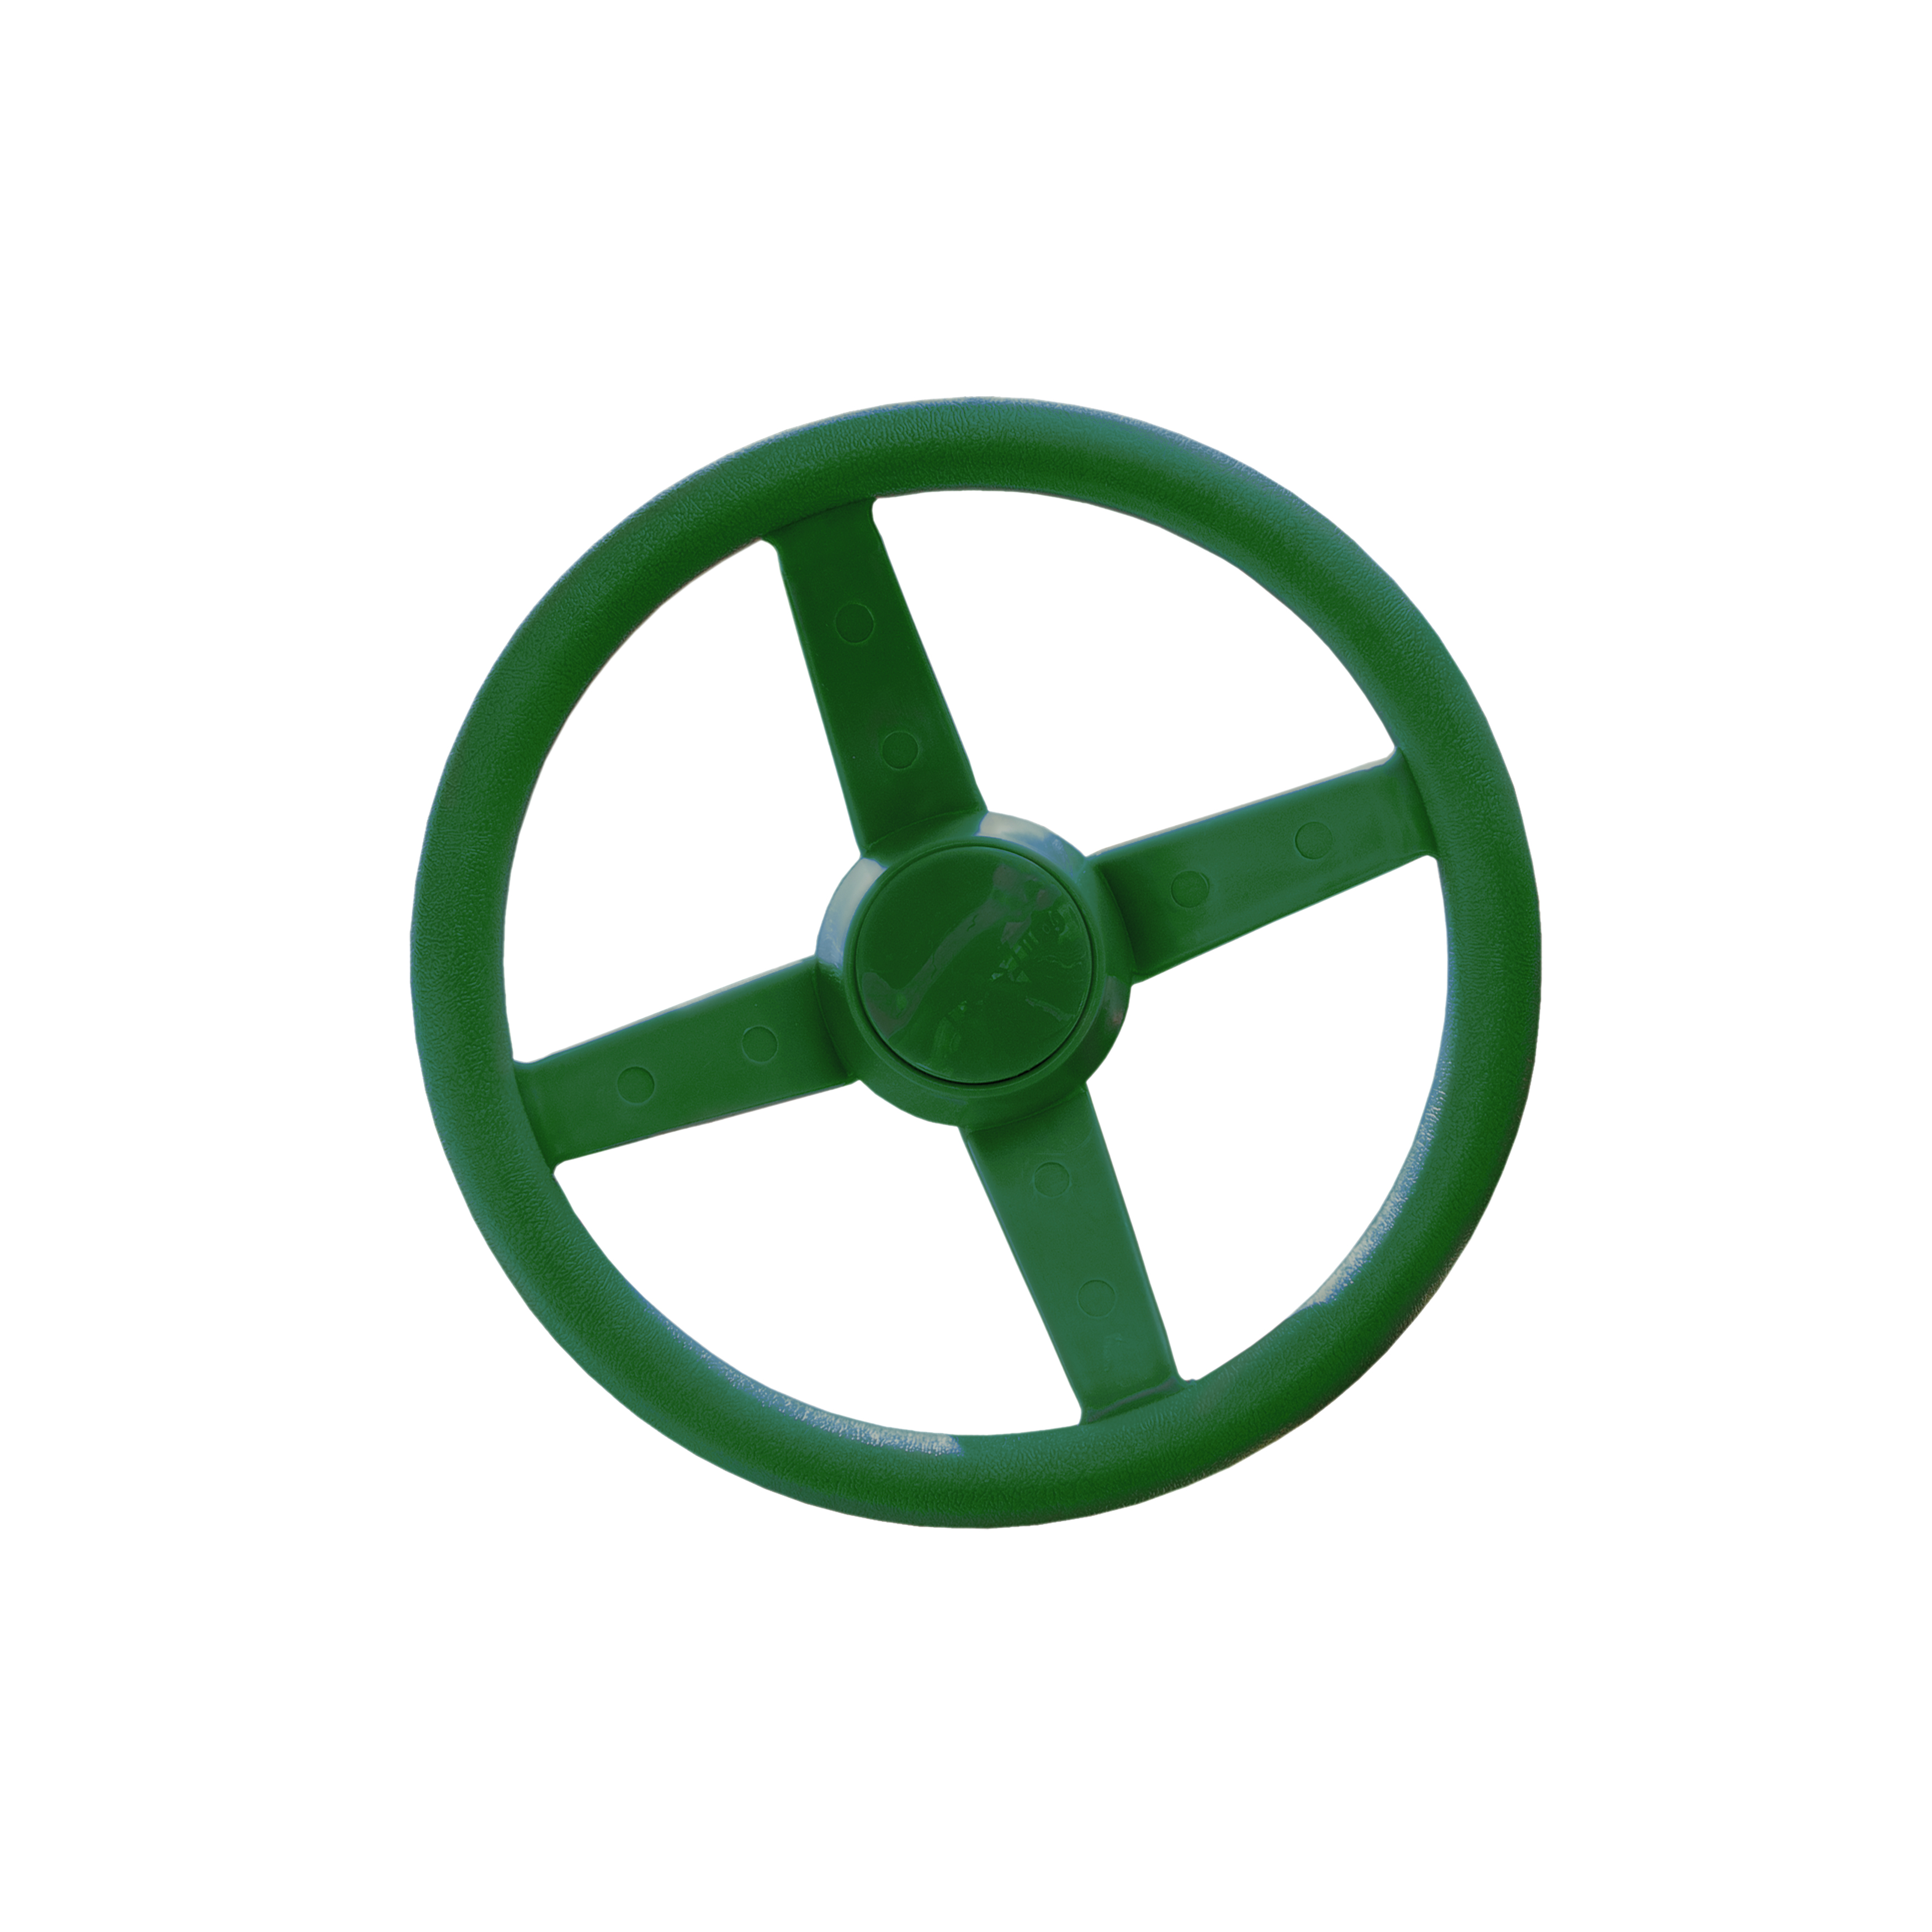 Gorilla Playsets Steering Wheel Swing Set Accessory Green